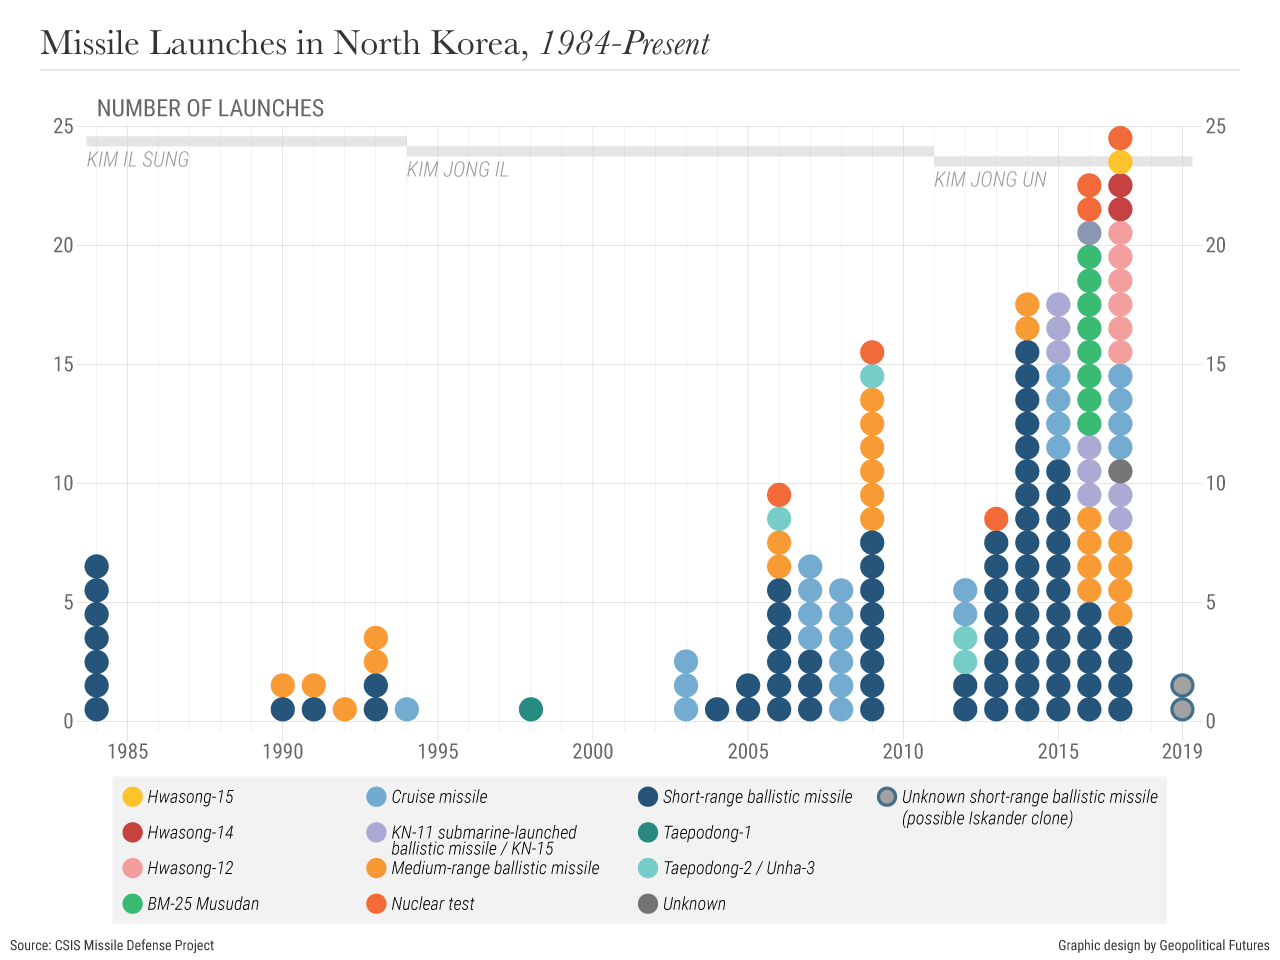 Missile Launches in North Korea, 1984-Present